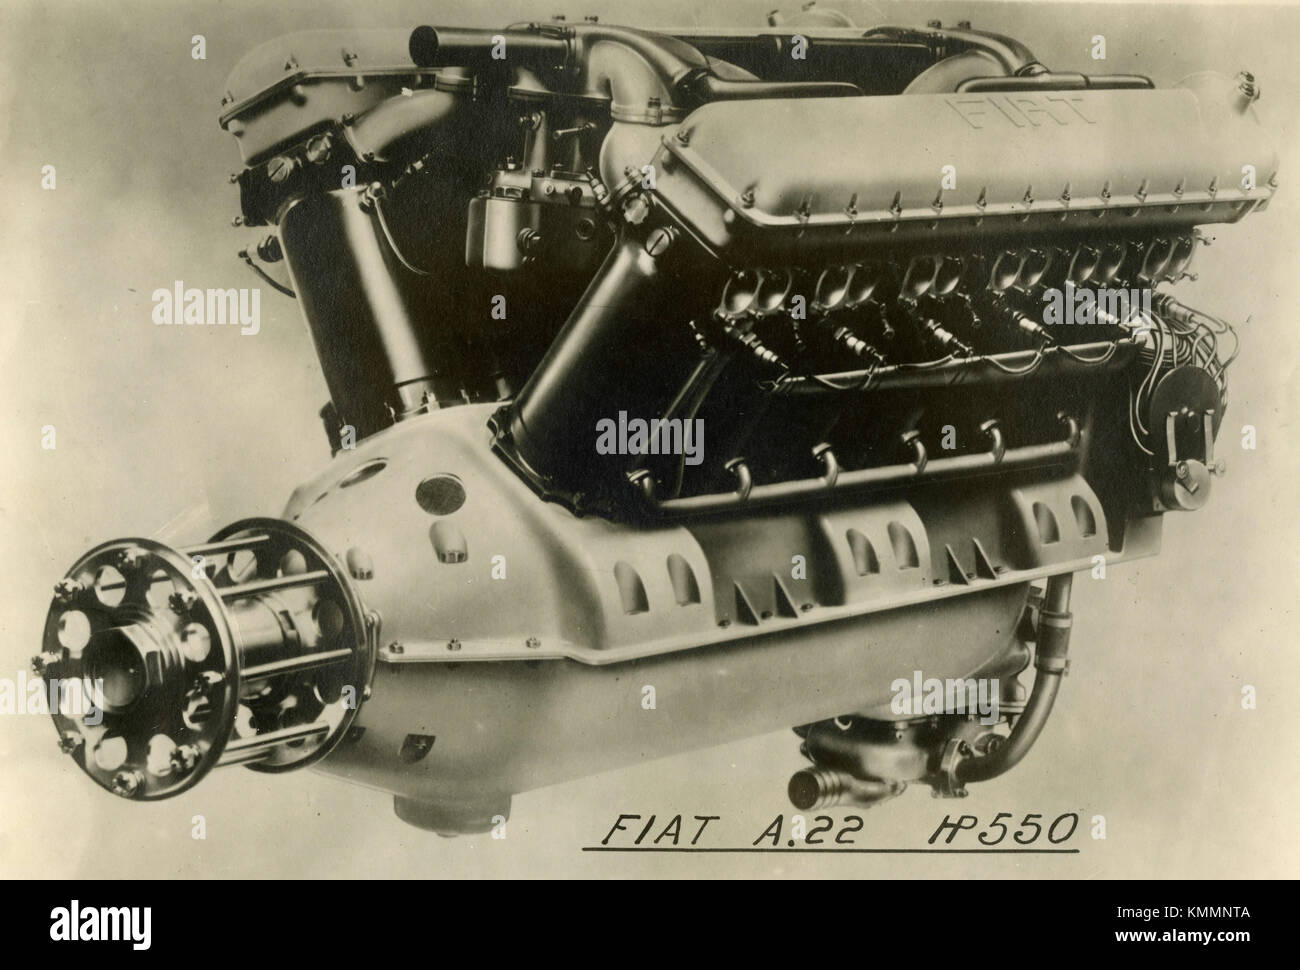 FIAT aviation engine A.22 (550 CV), Italy 1920s - Stock Image